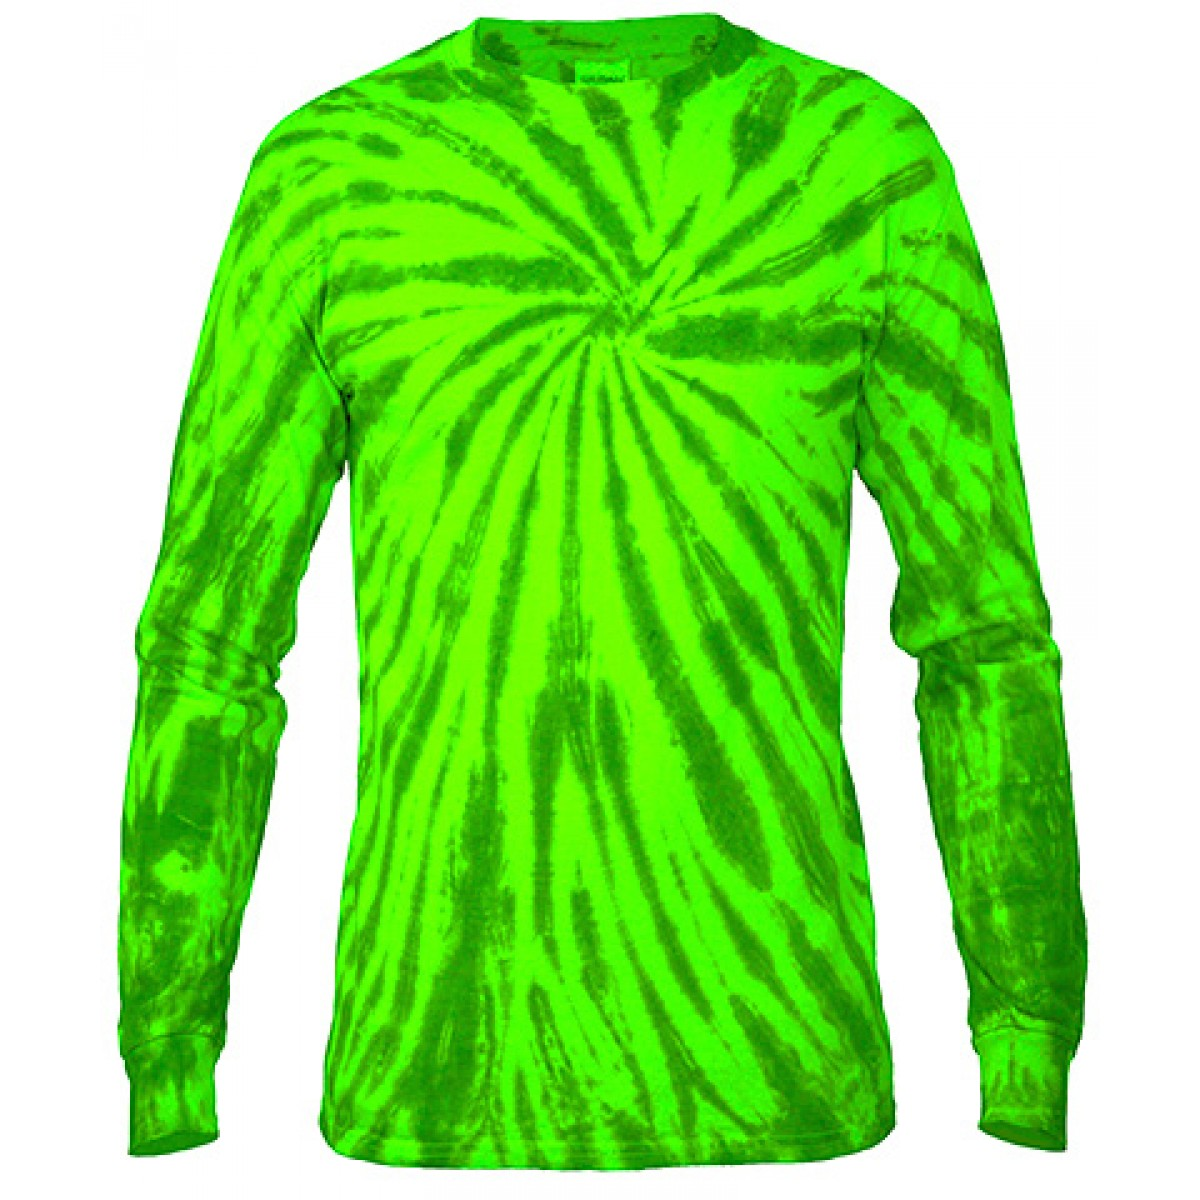 Multi Color Tie-Dye Long Sleeve Shirt -Green-3XL